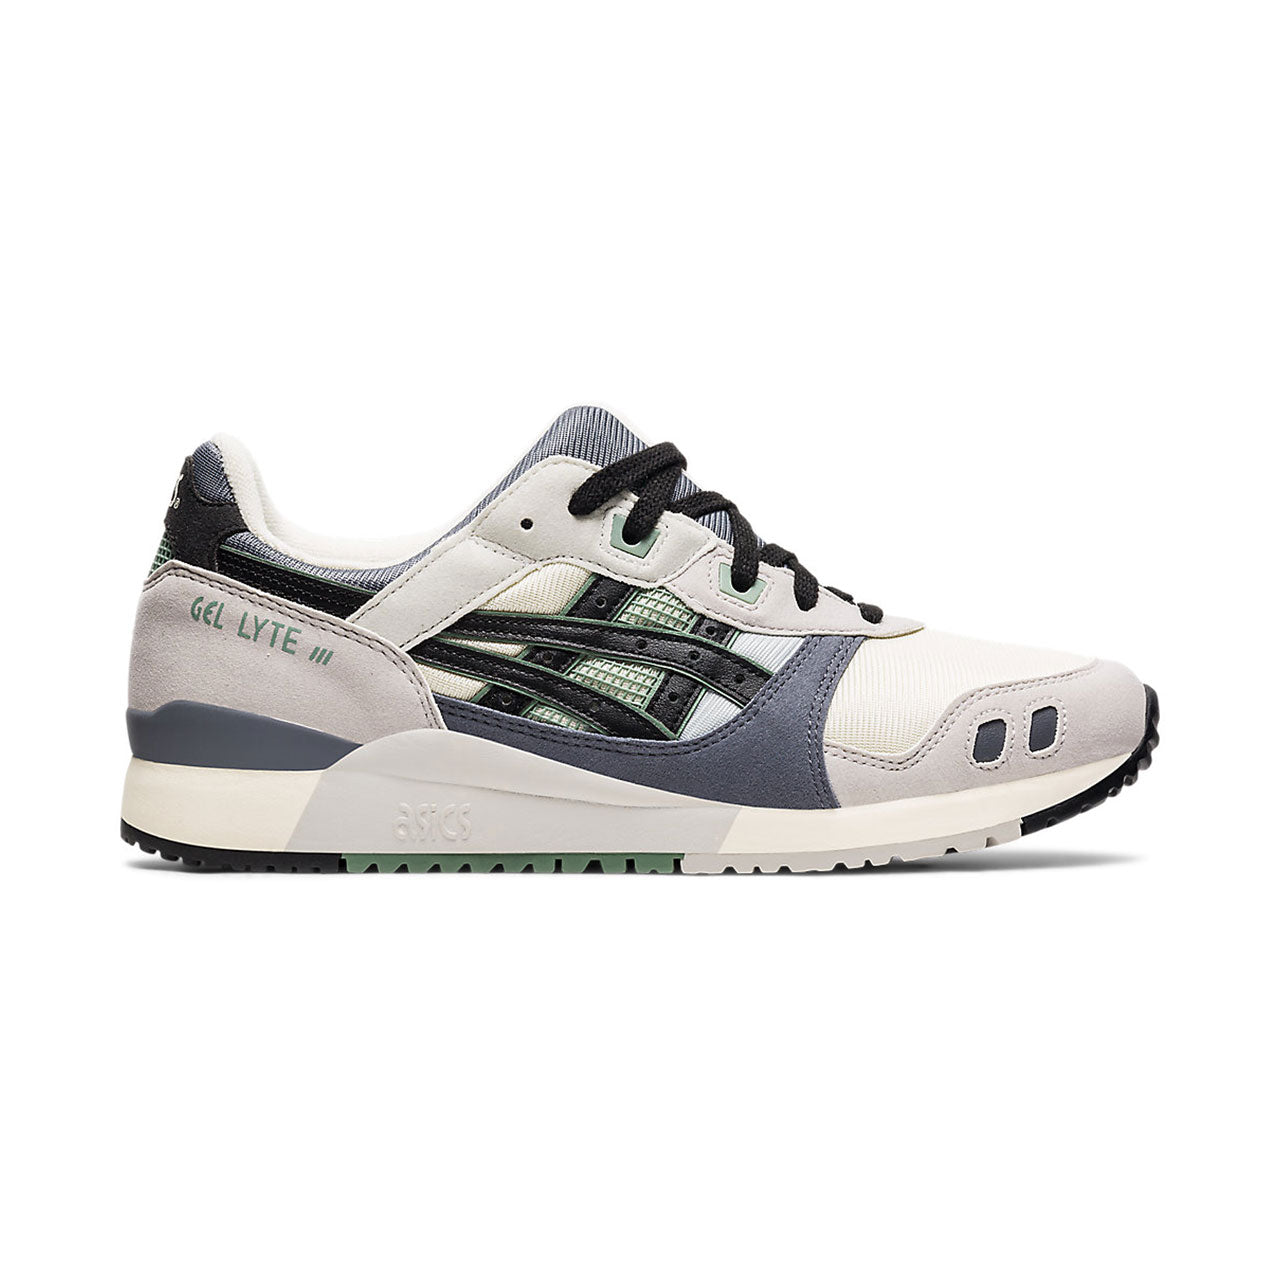 Asics Gel-Lyte OG Ivory Black Sneakers